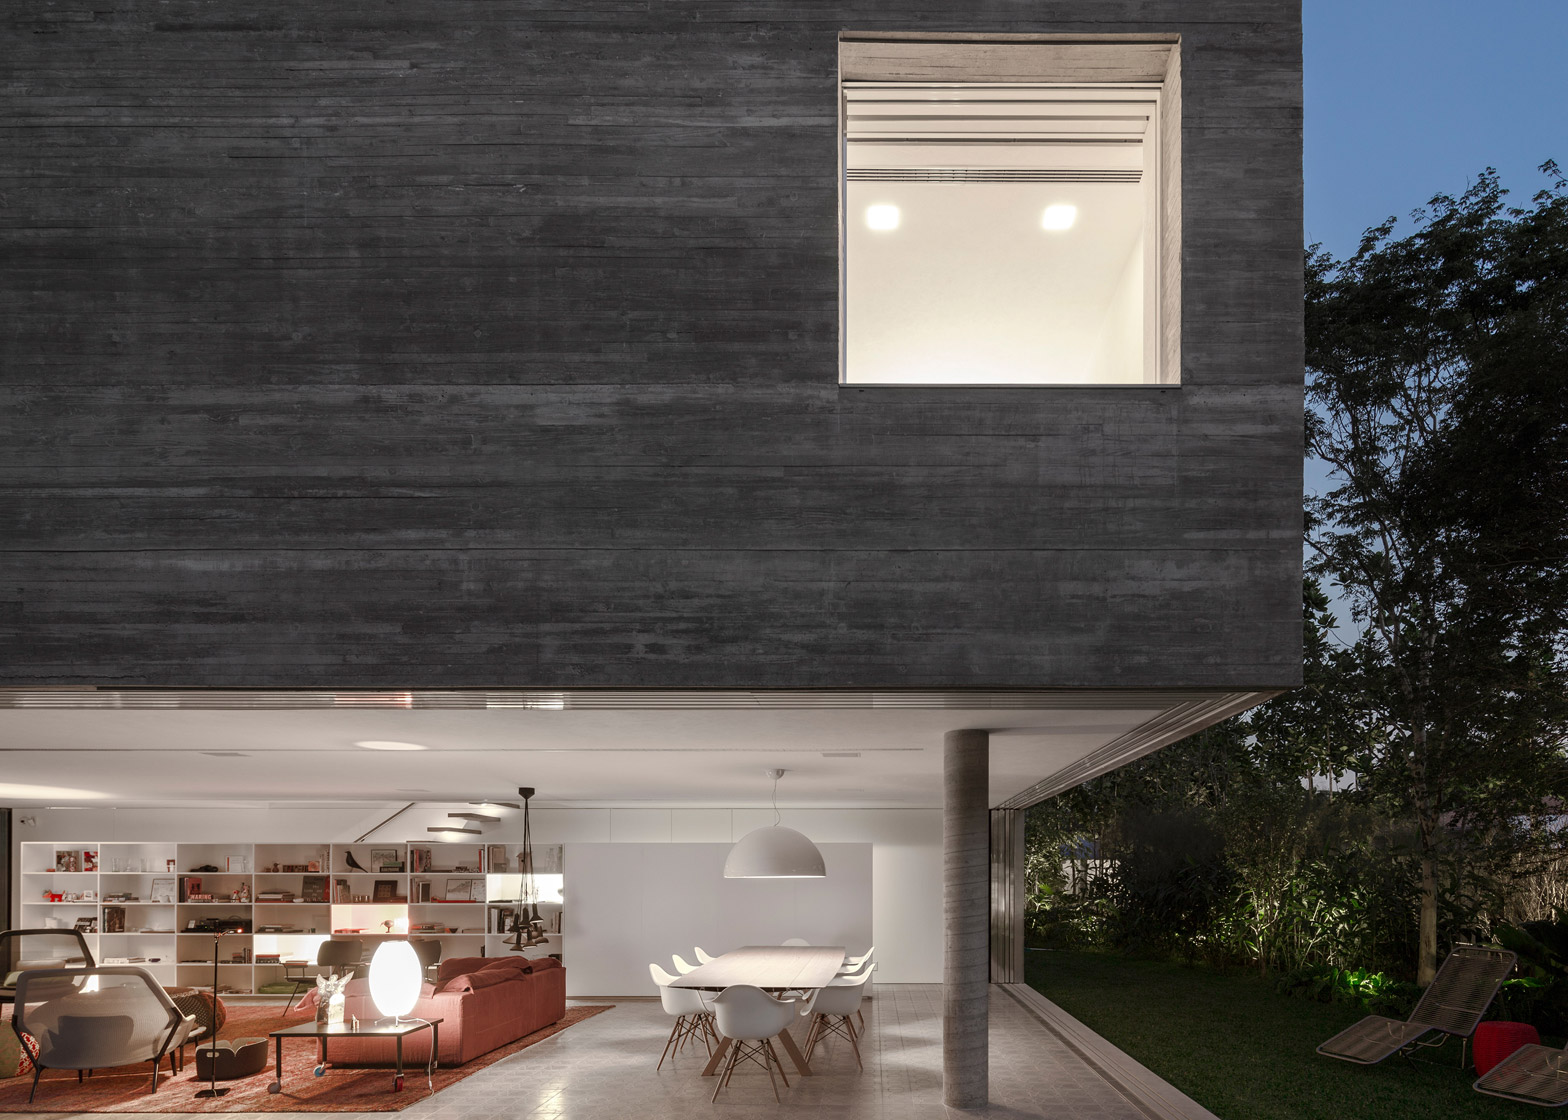 Casa Cubo by Studio MK27 – Platinum A' Design Award Winner for Interior and Exhibition Space Design category